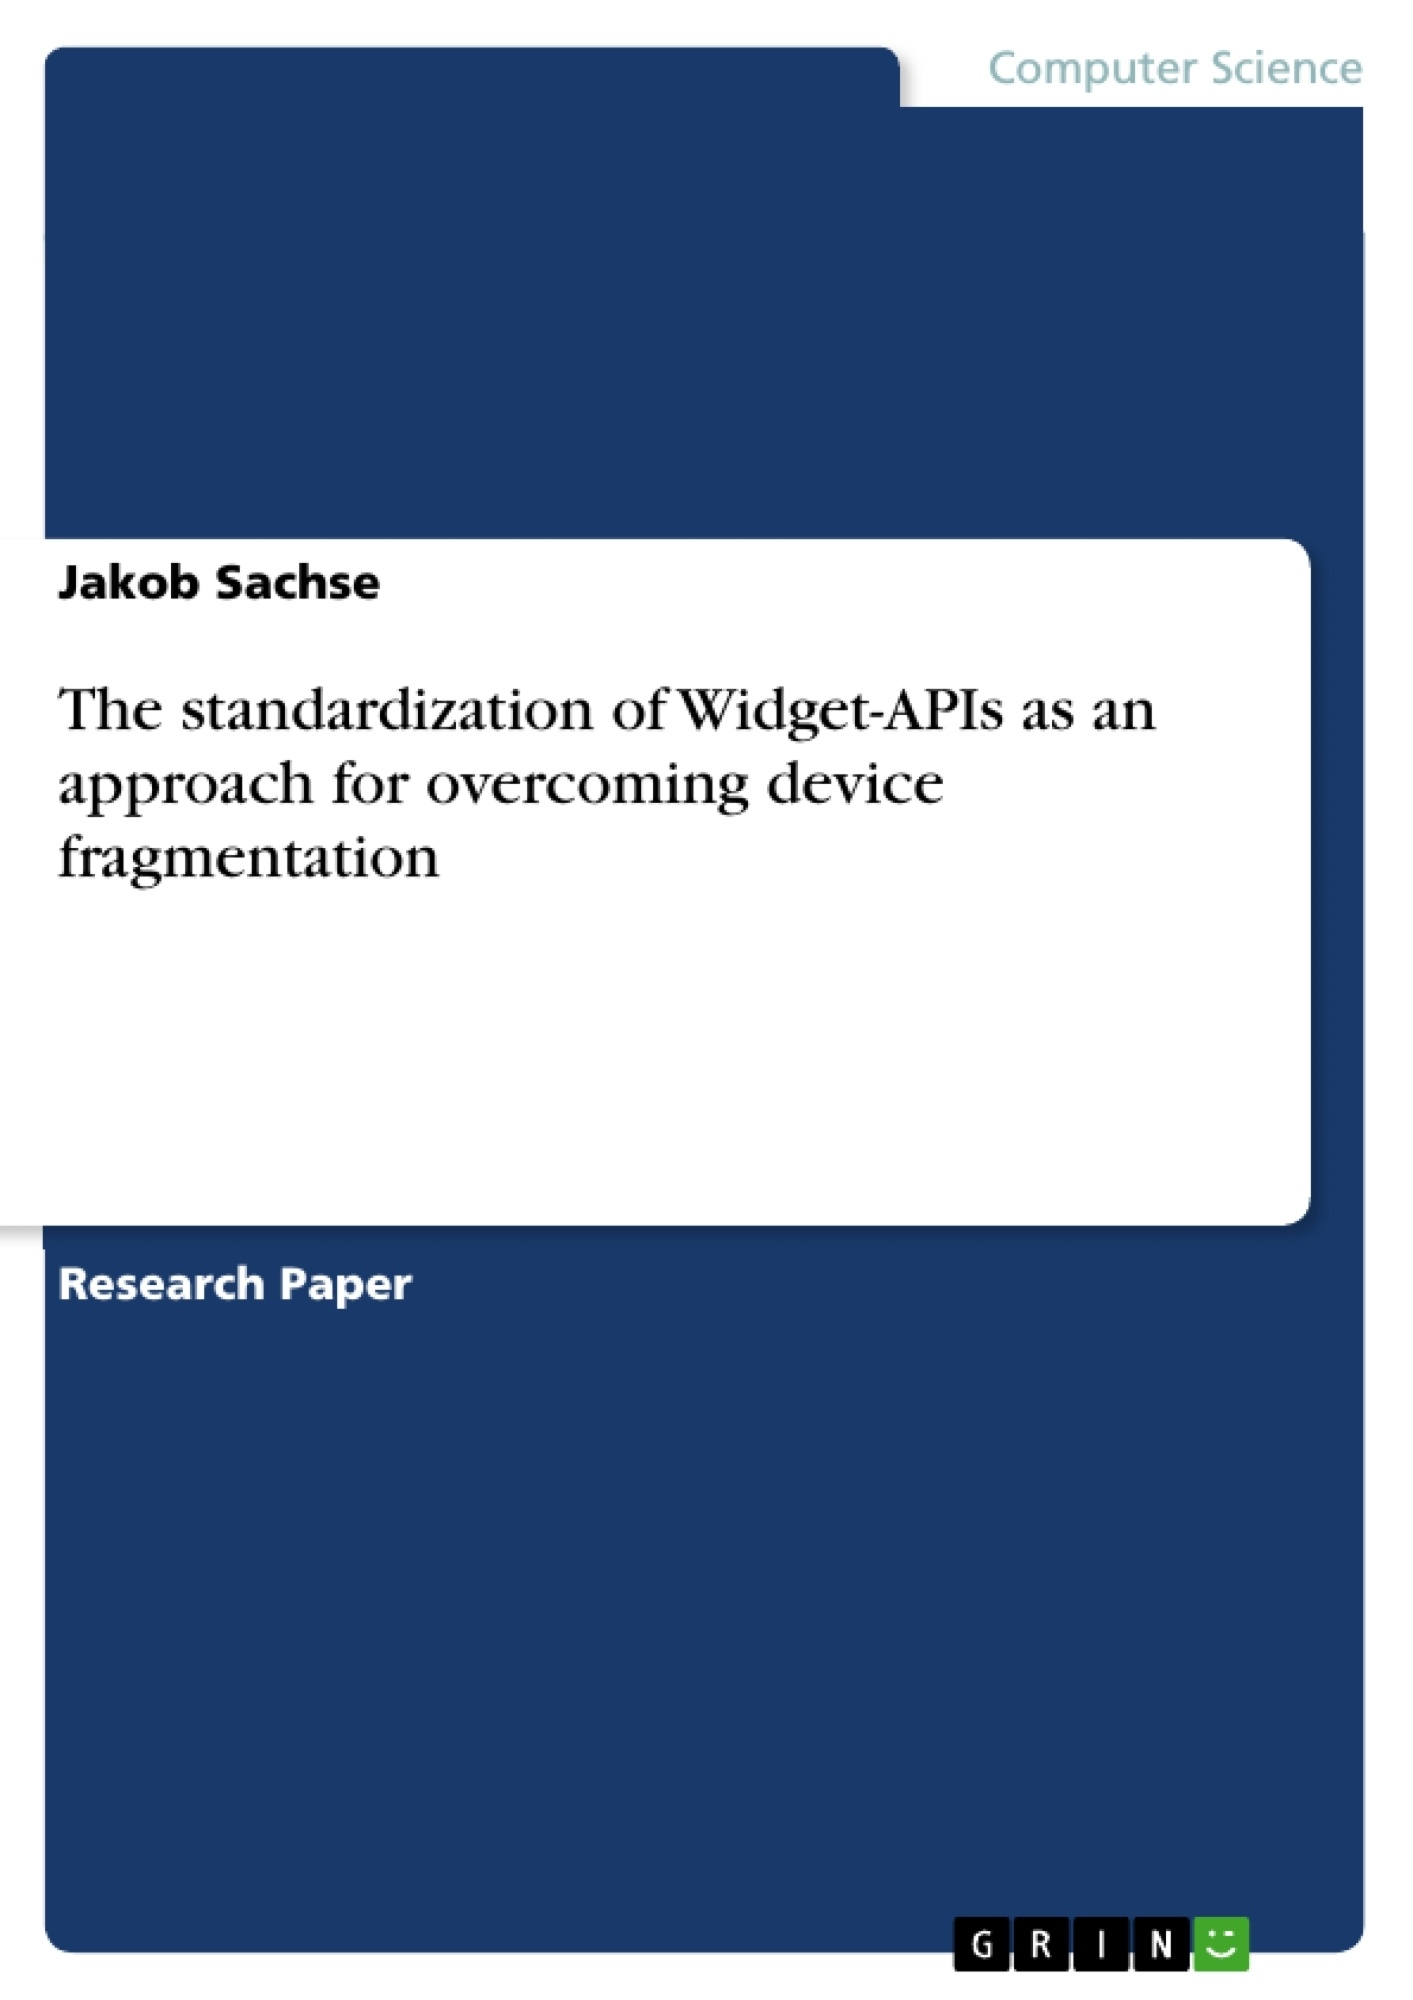 Title: The standardization of Widget-APIs as an approach for overcoming device fragmentation